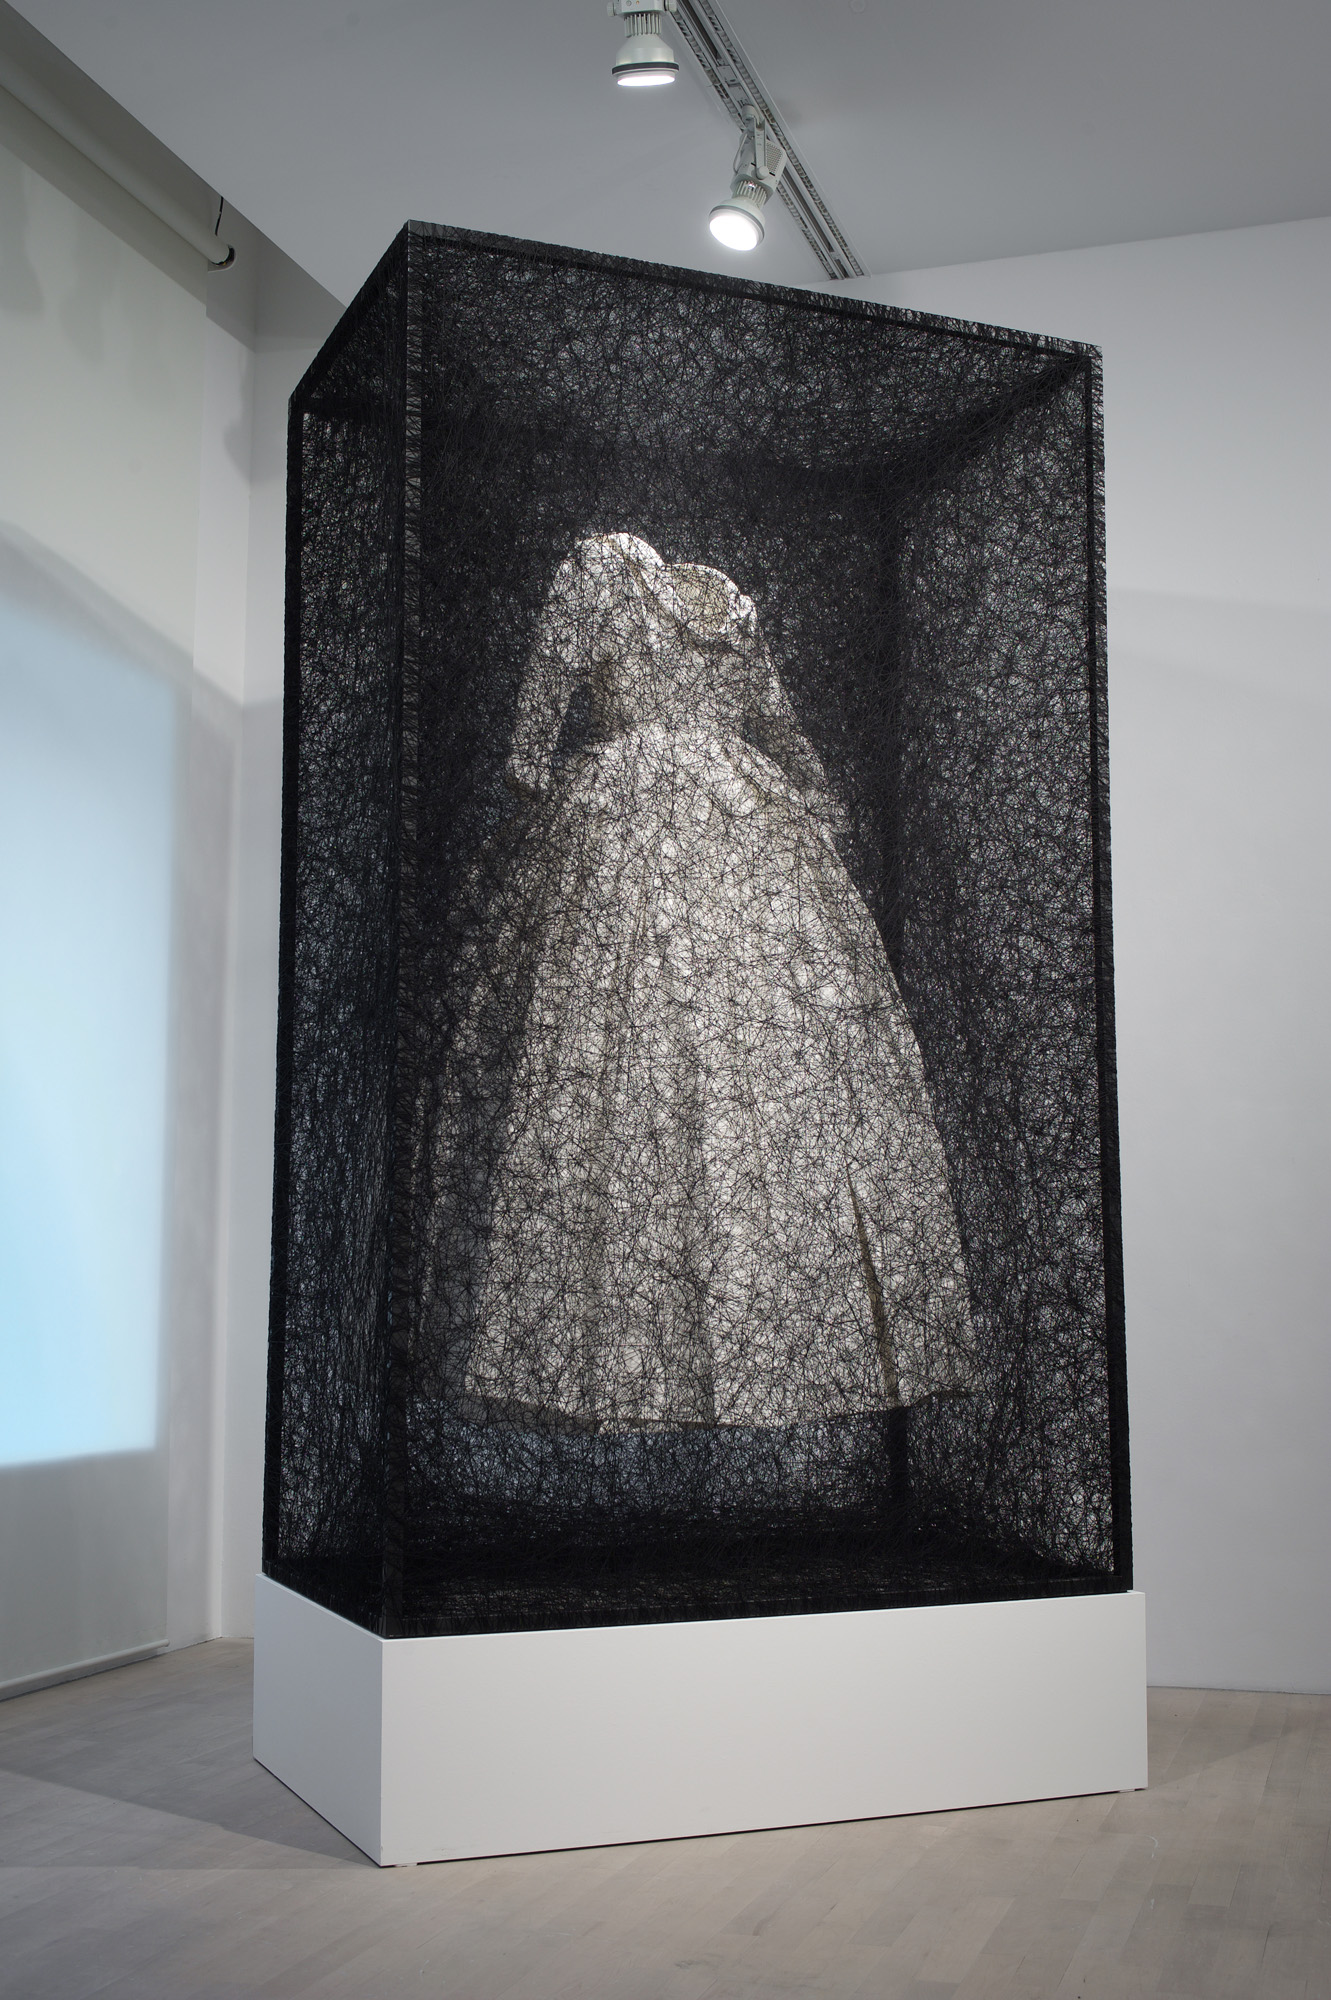 Chiharu Shiota's 'State of Being' - White Dress Entombed in a Web of Black Thread